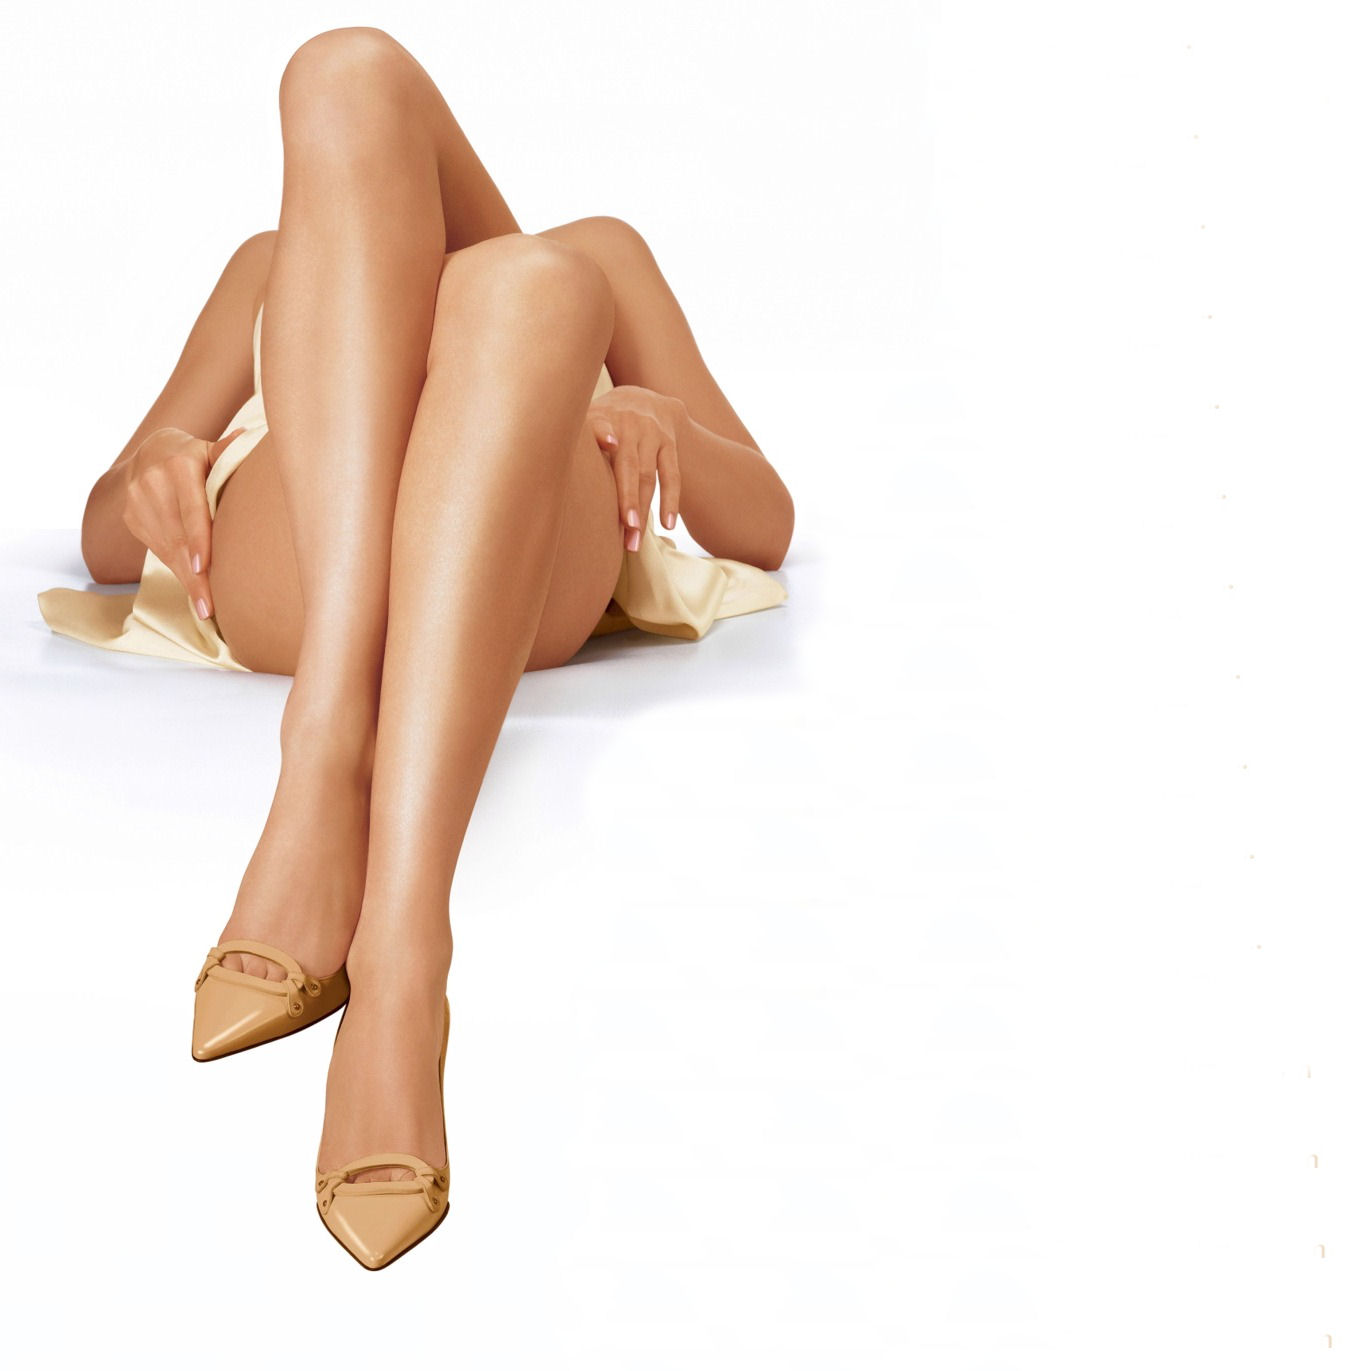 women's silky smooth legs